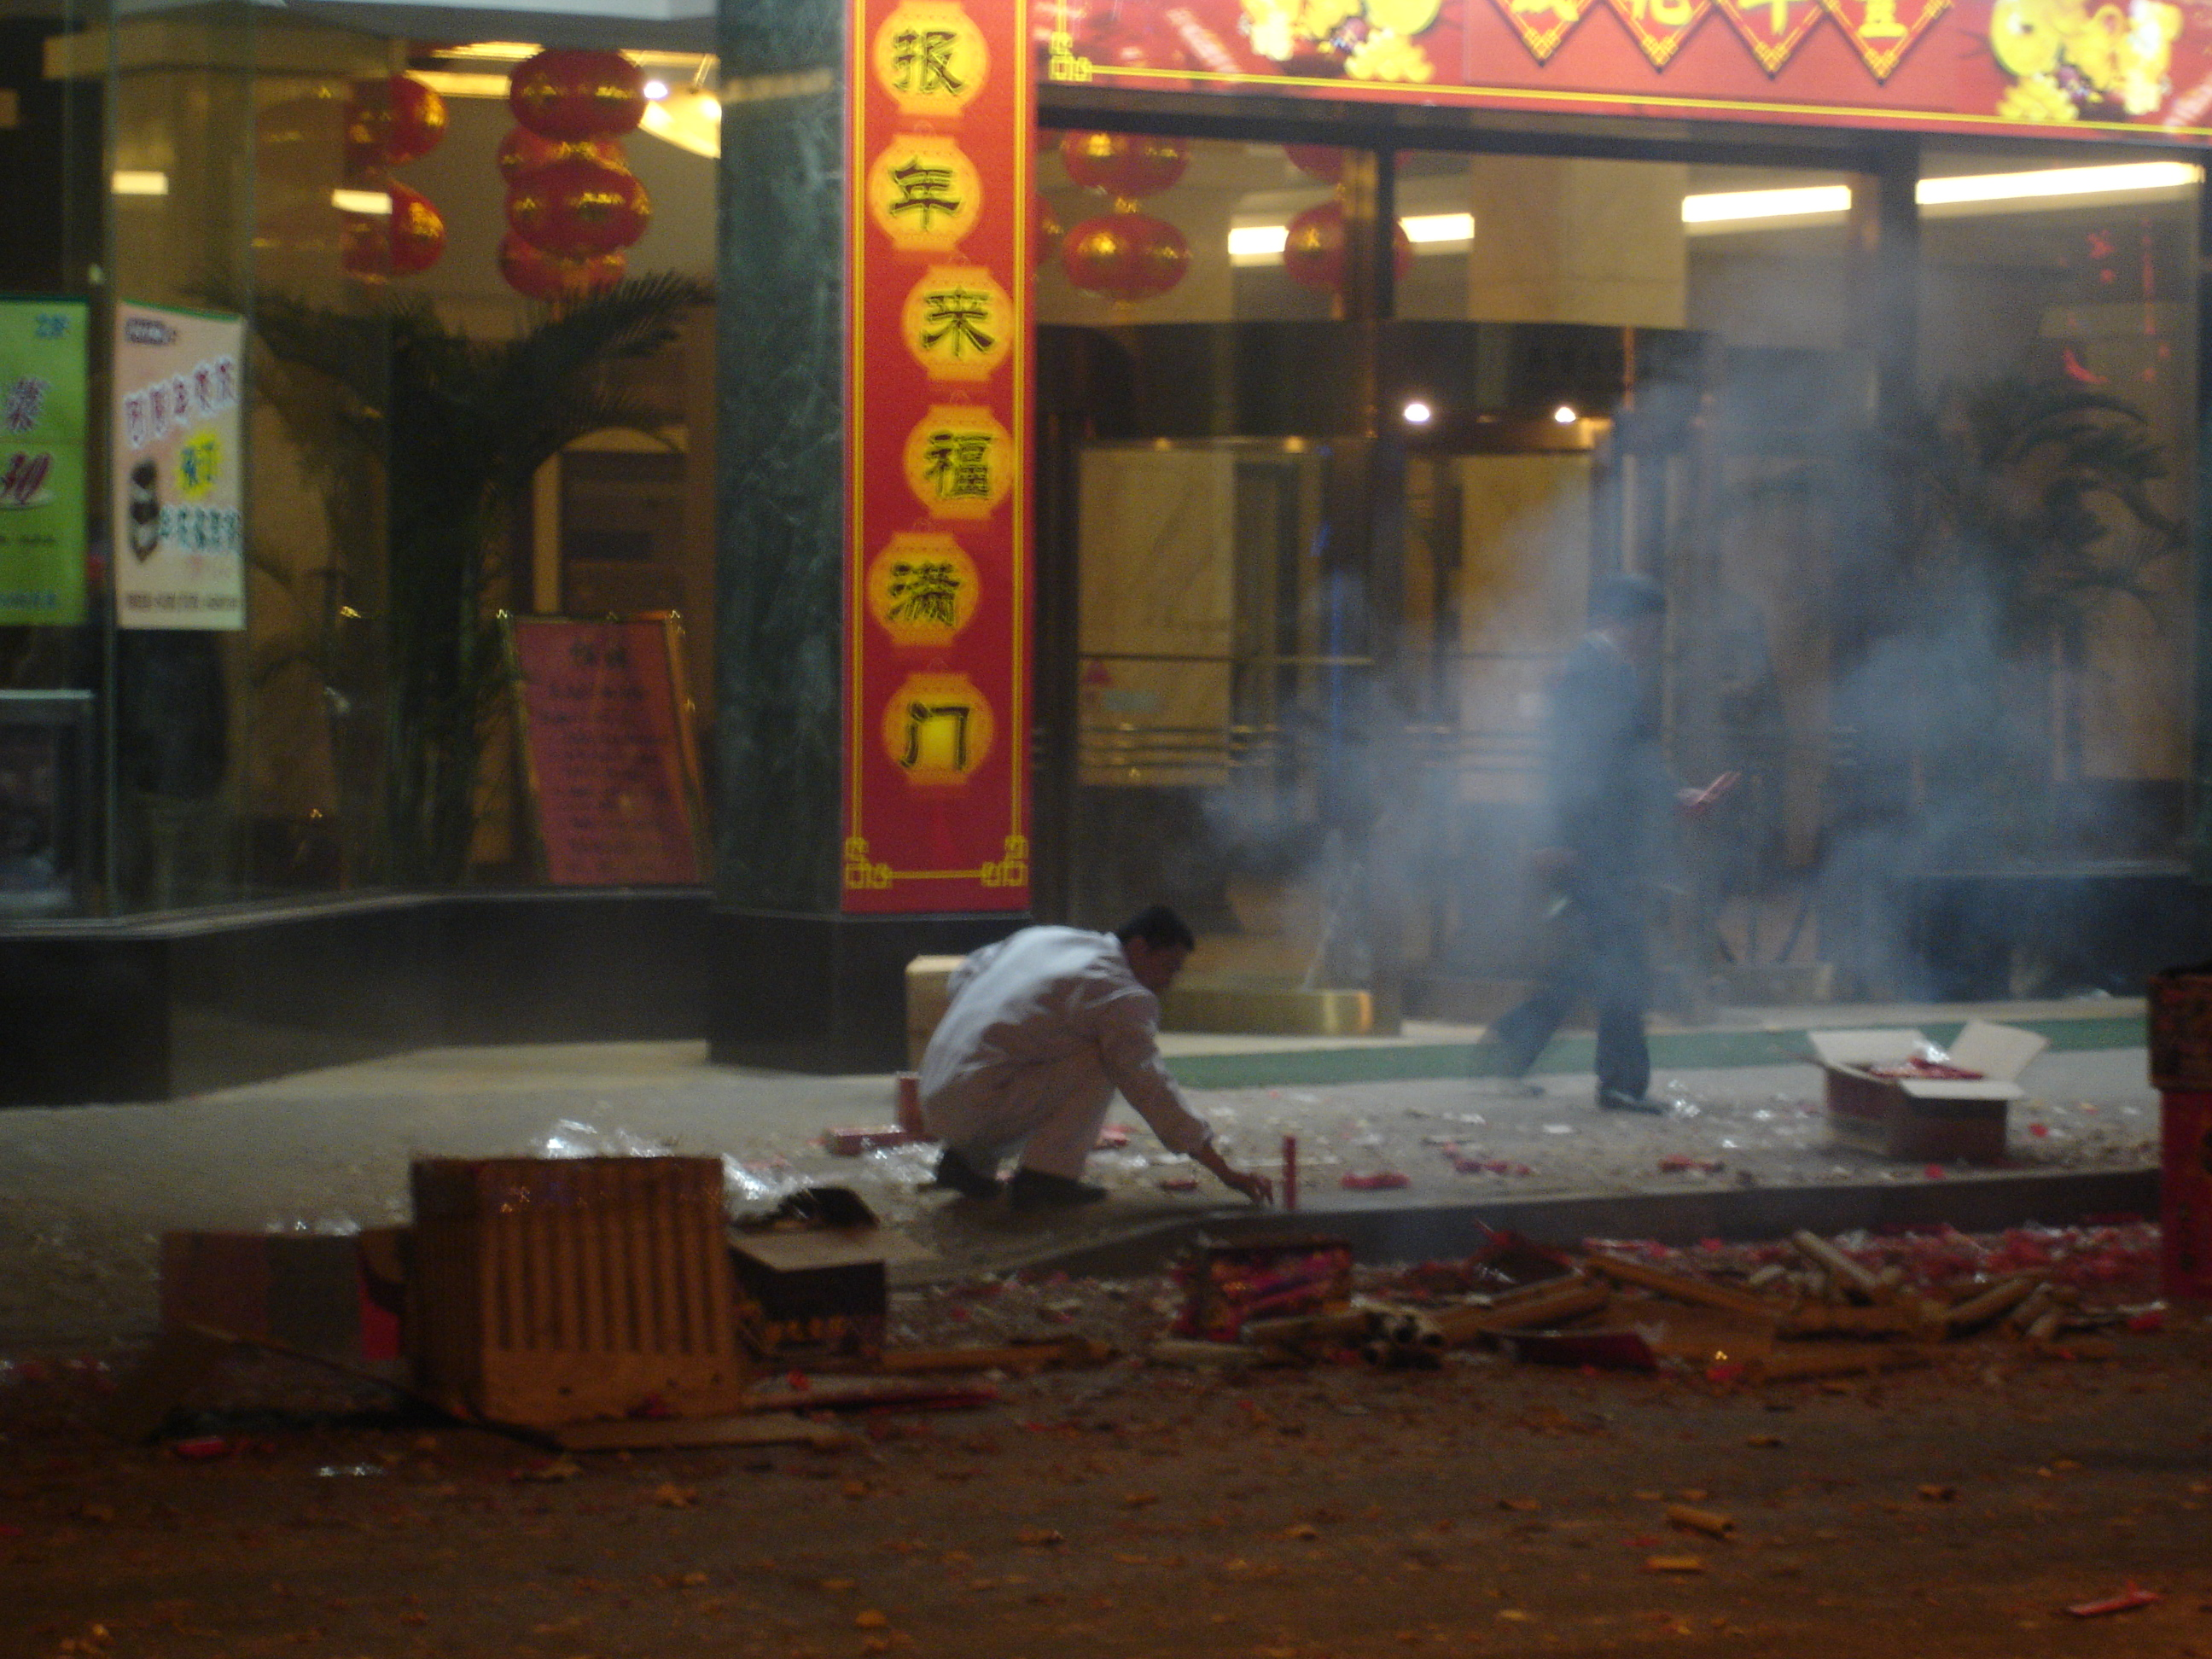 Local man setting off a firework in downtown Shanghai, during Chinese New Year. Photo taken on February 6, 2008,